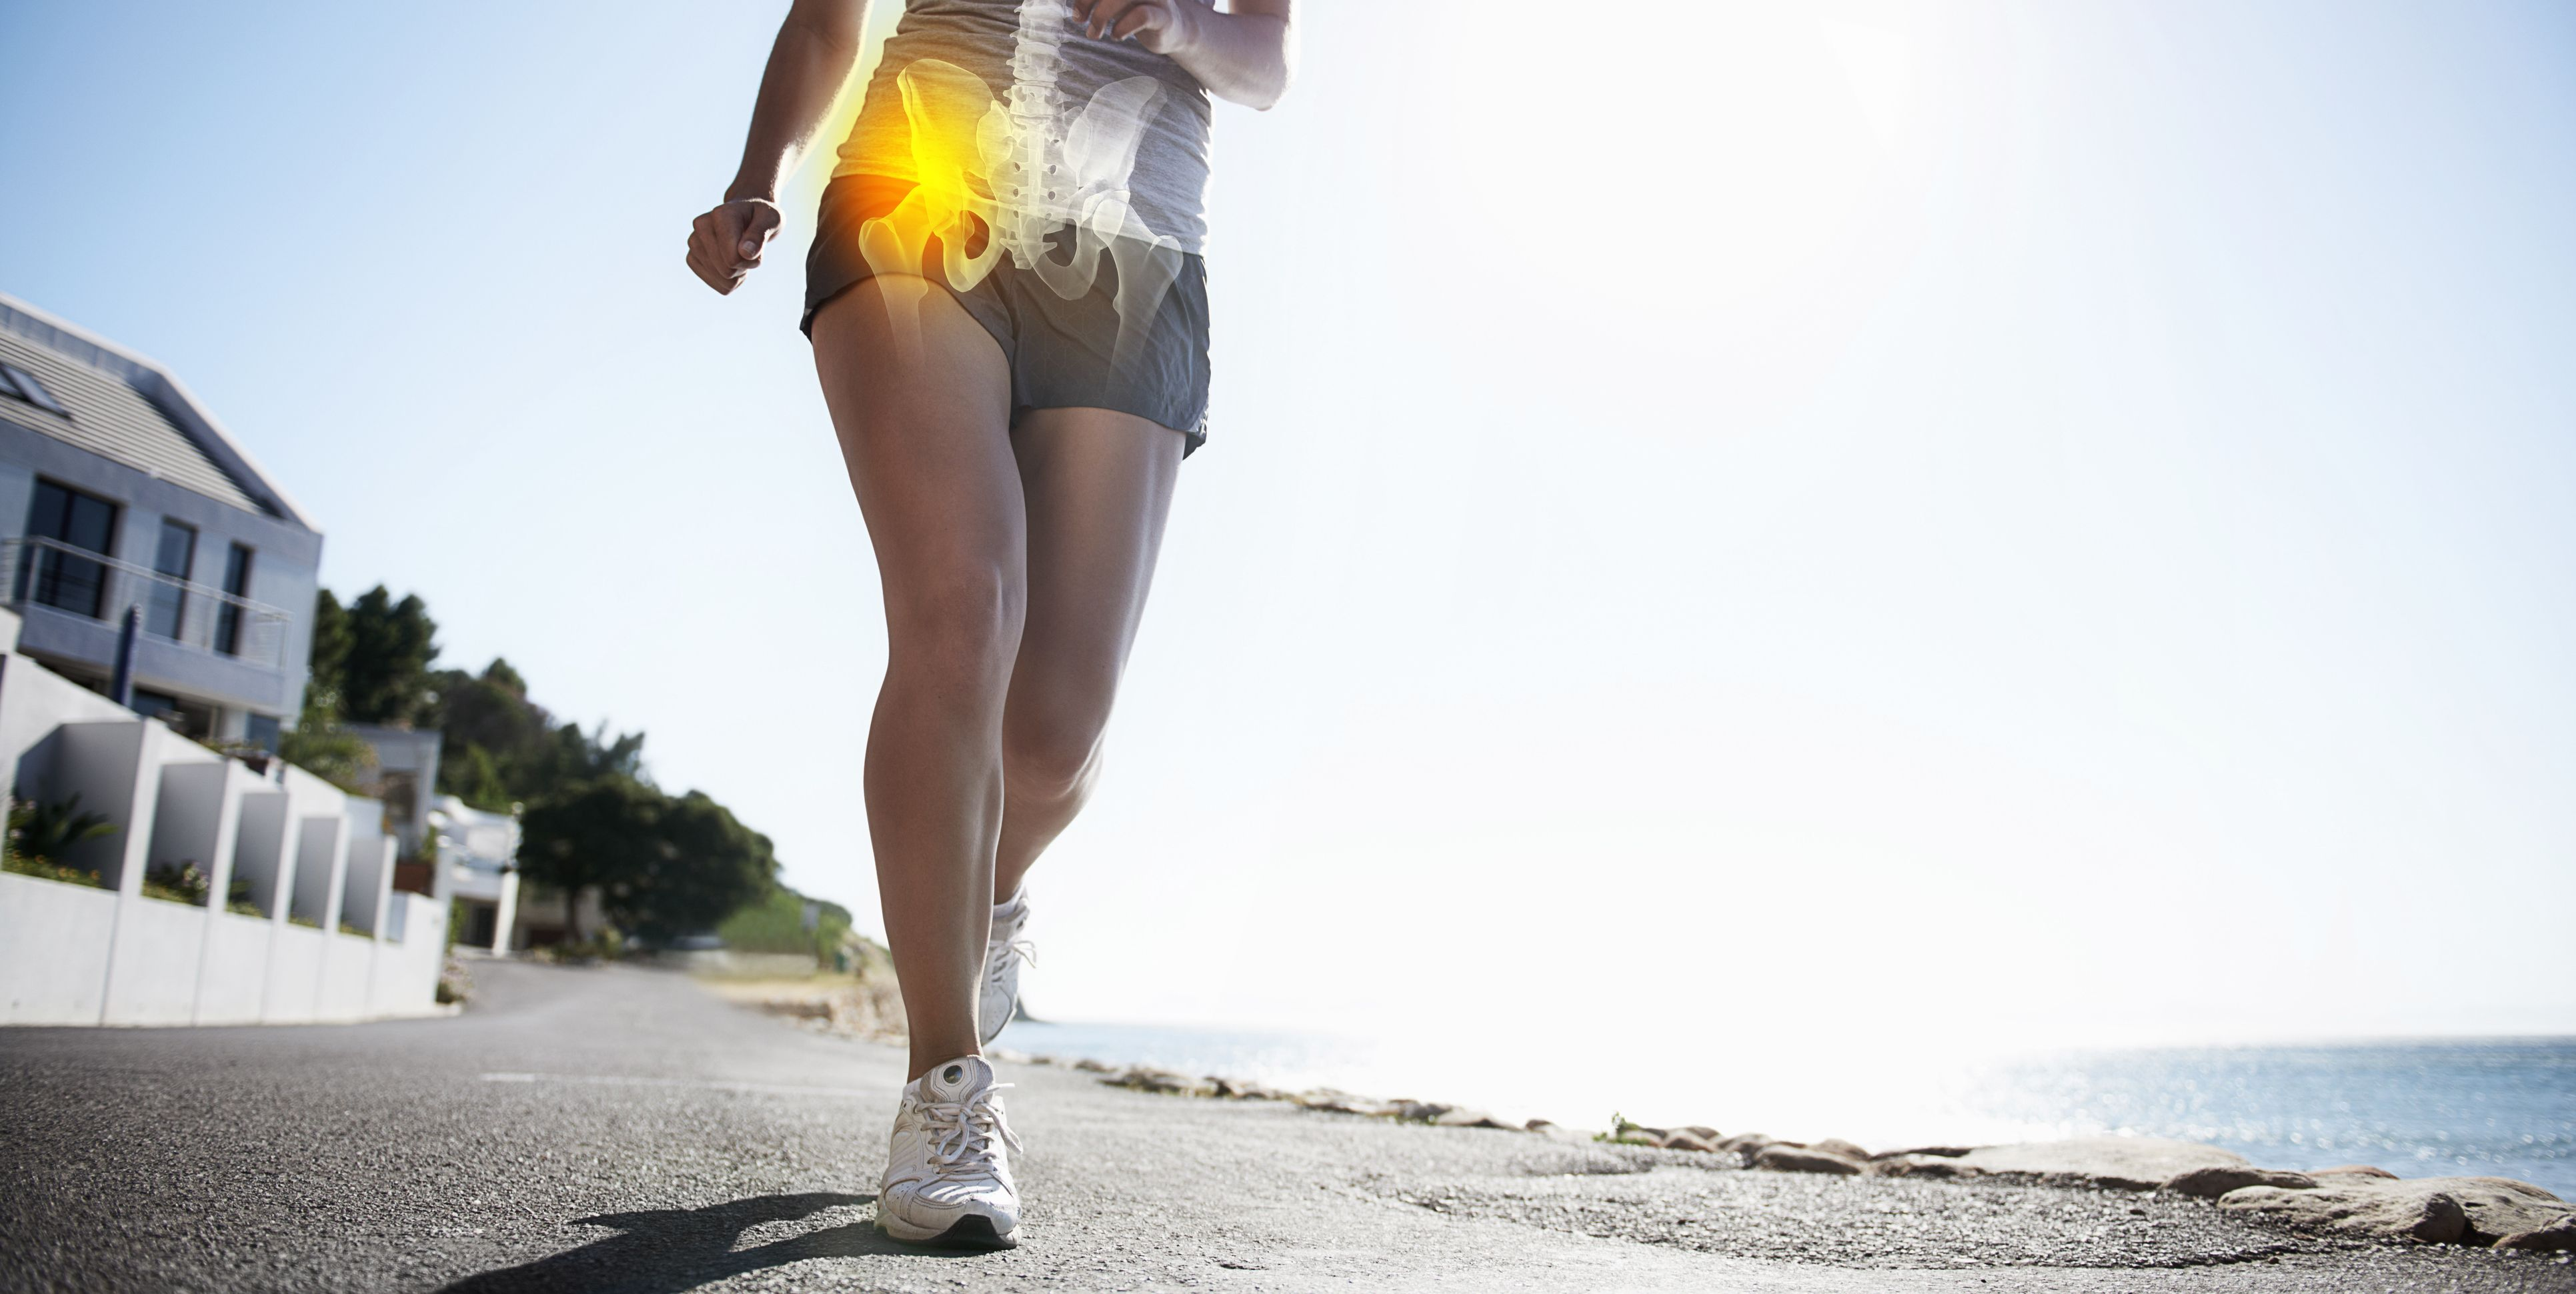 Joint pain slowing you down?